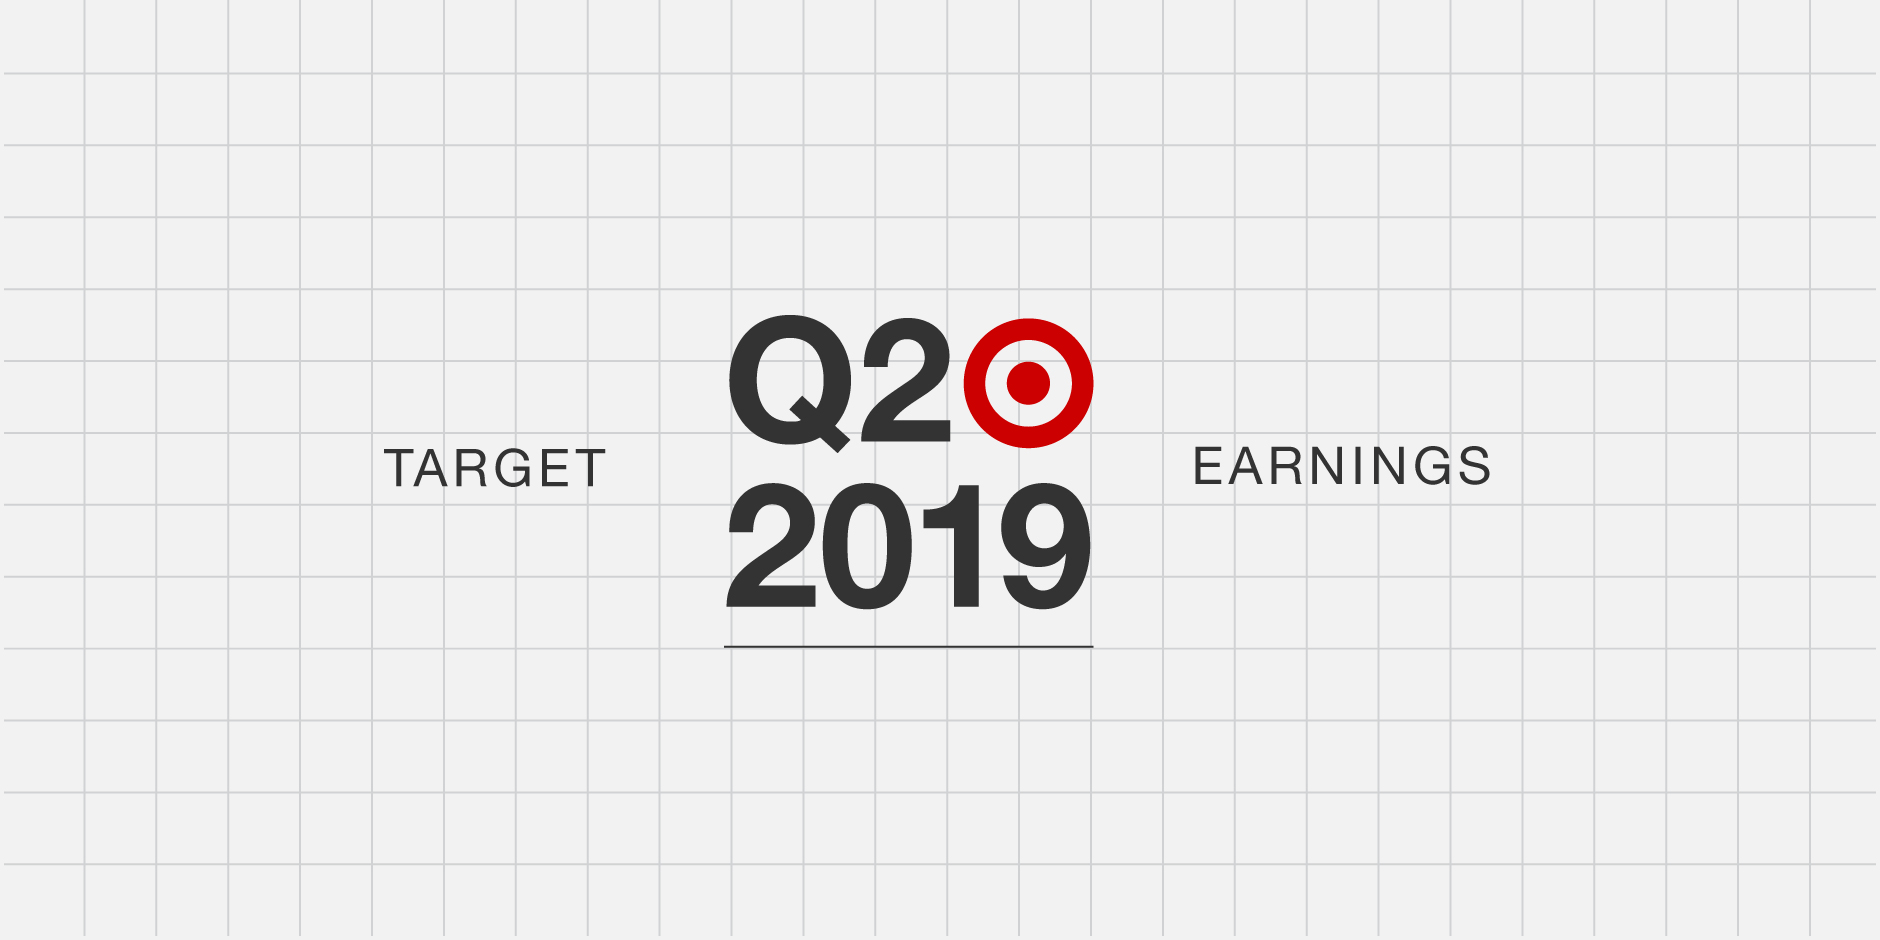 Gray grid lines with red bullseye logo and black text: Target Q2 2019 Earnings